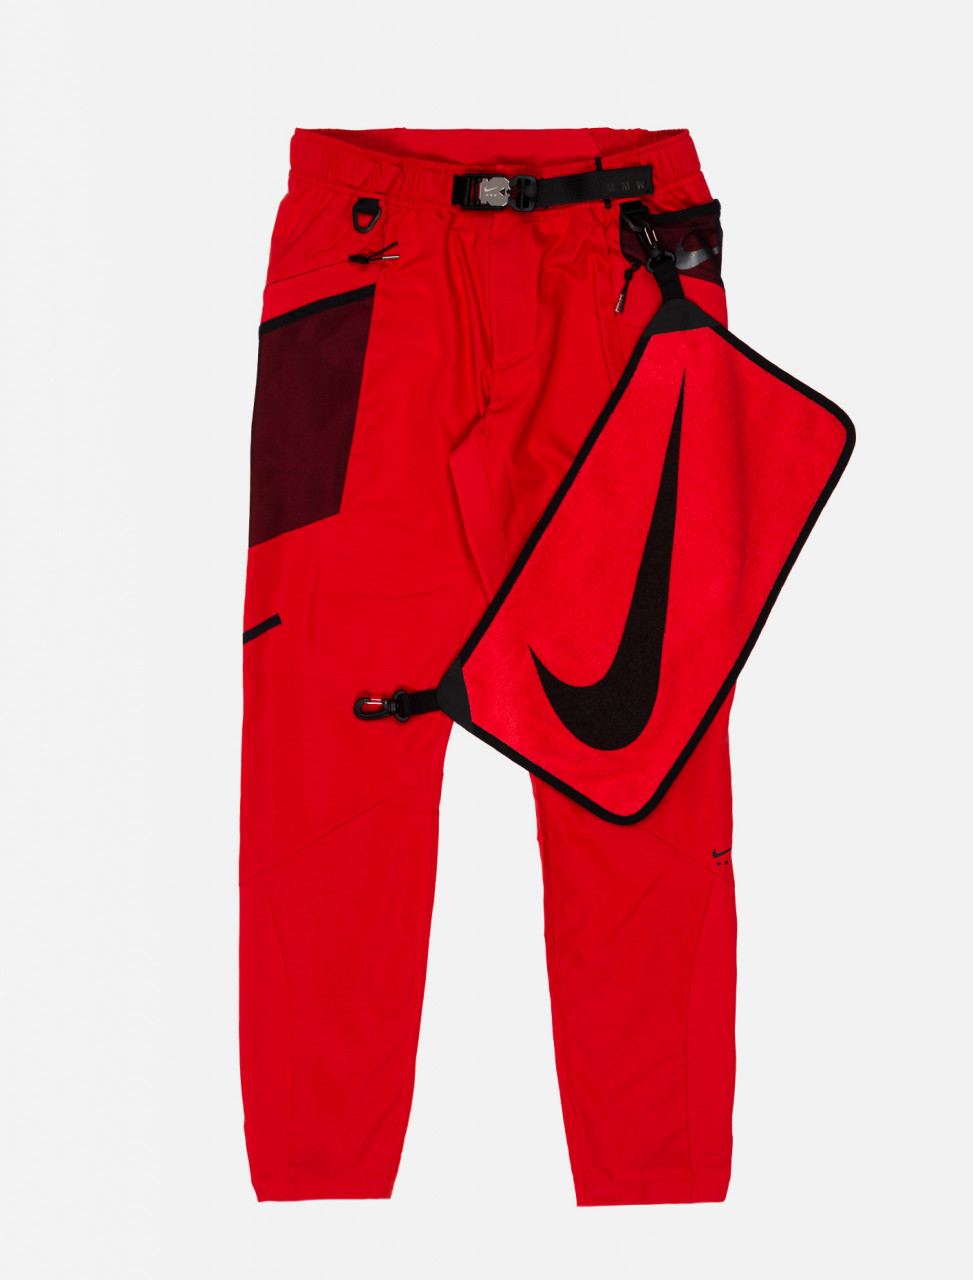 Nike x MMW Trousers